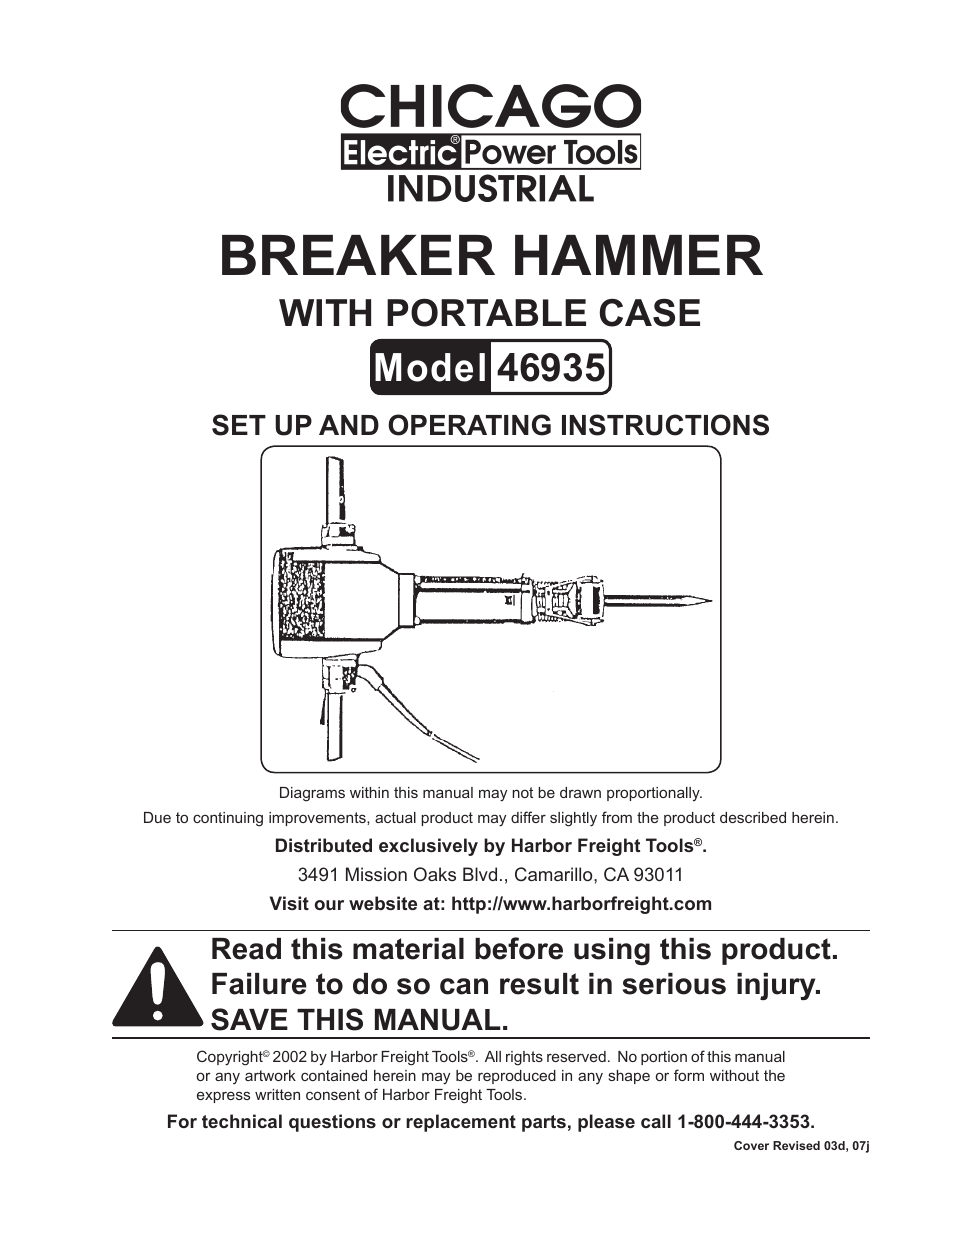 harbor freight tools chicago electric breaker hammer with portable